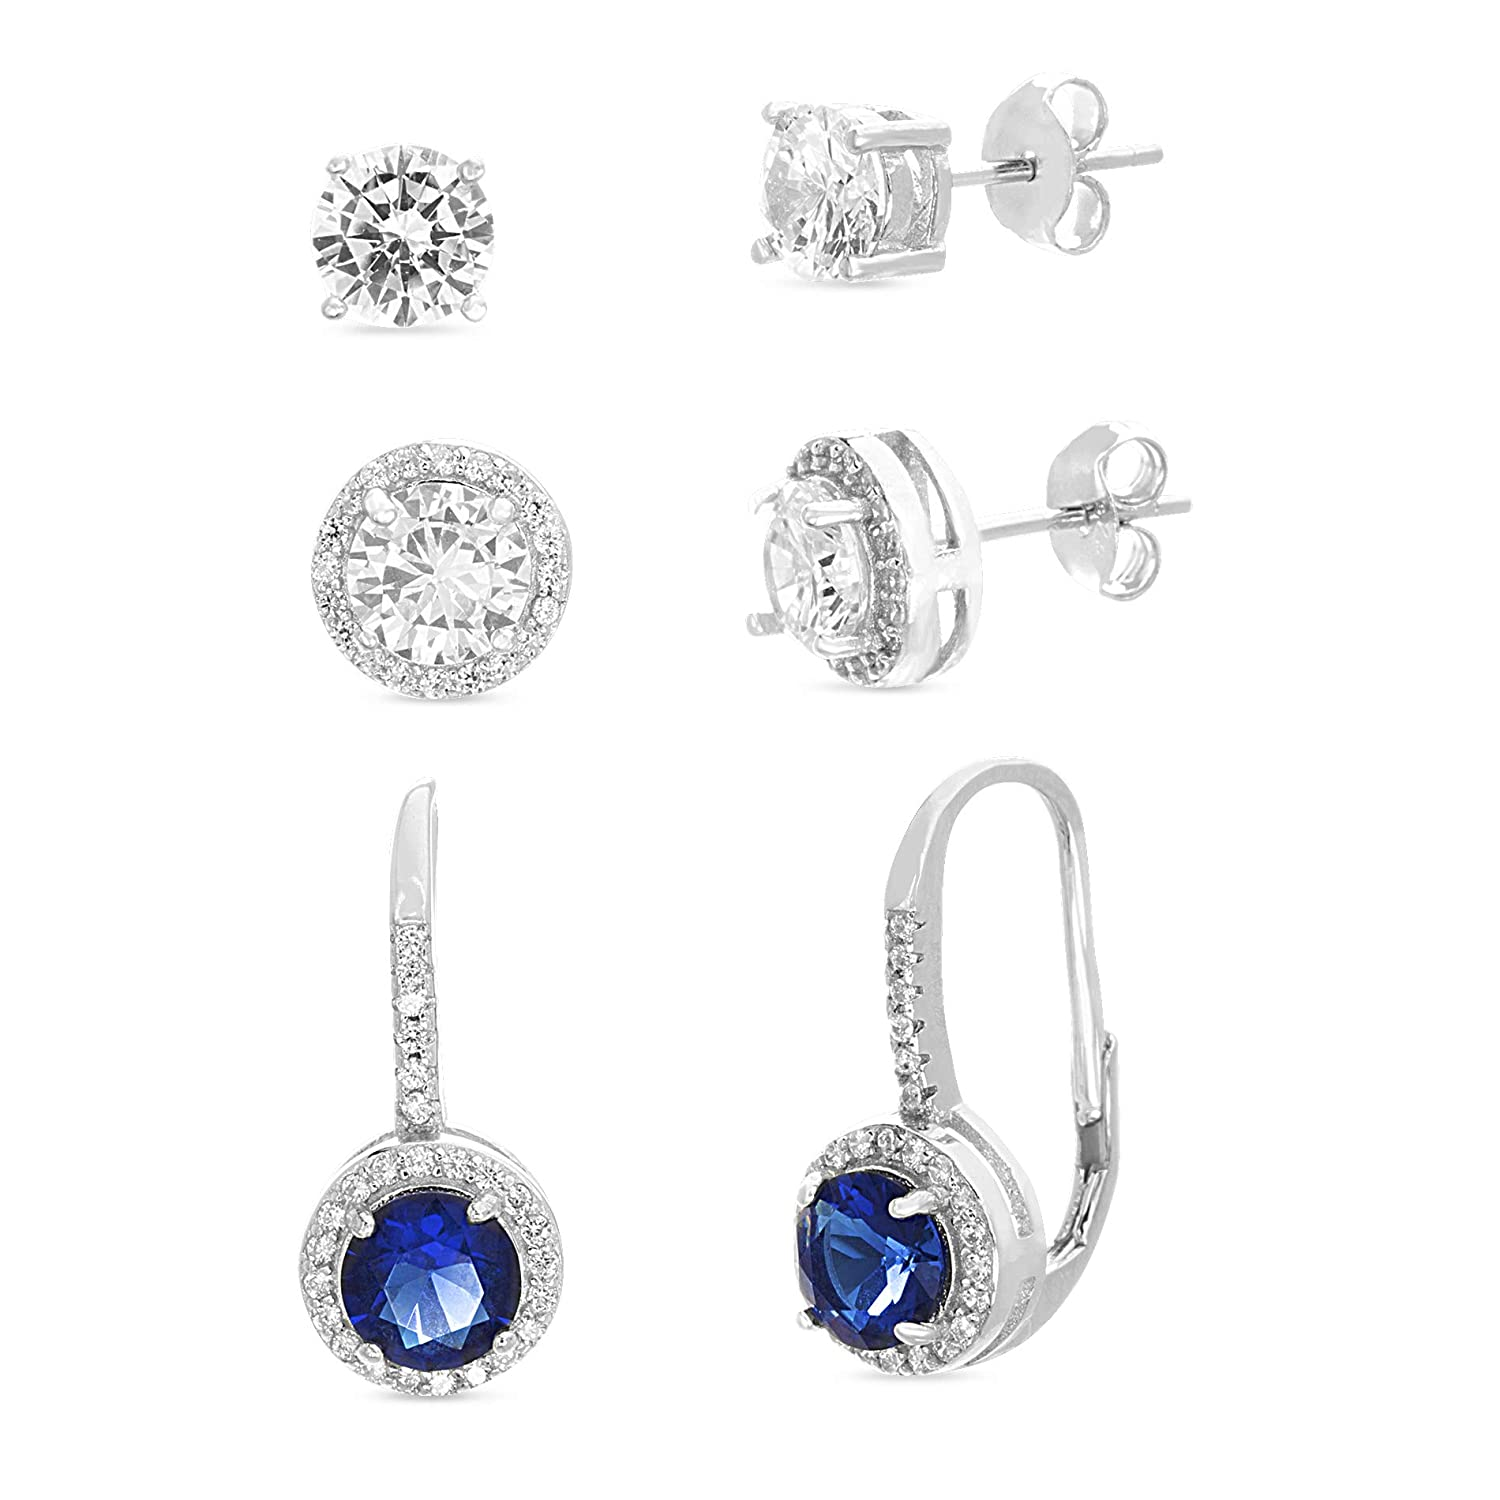 6f8430816 ... 6mm Round Cubic Zirconia and Simulated Sapphire Stud Combo and  Leverback 3 Pair Bridal Gift Earring Set for Women in Rhodium Plated 925 Sterling  Silver ...